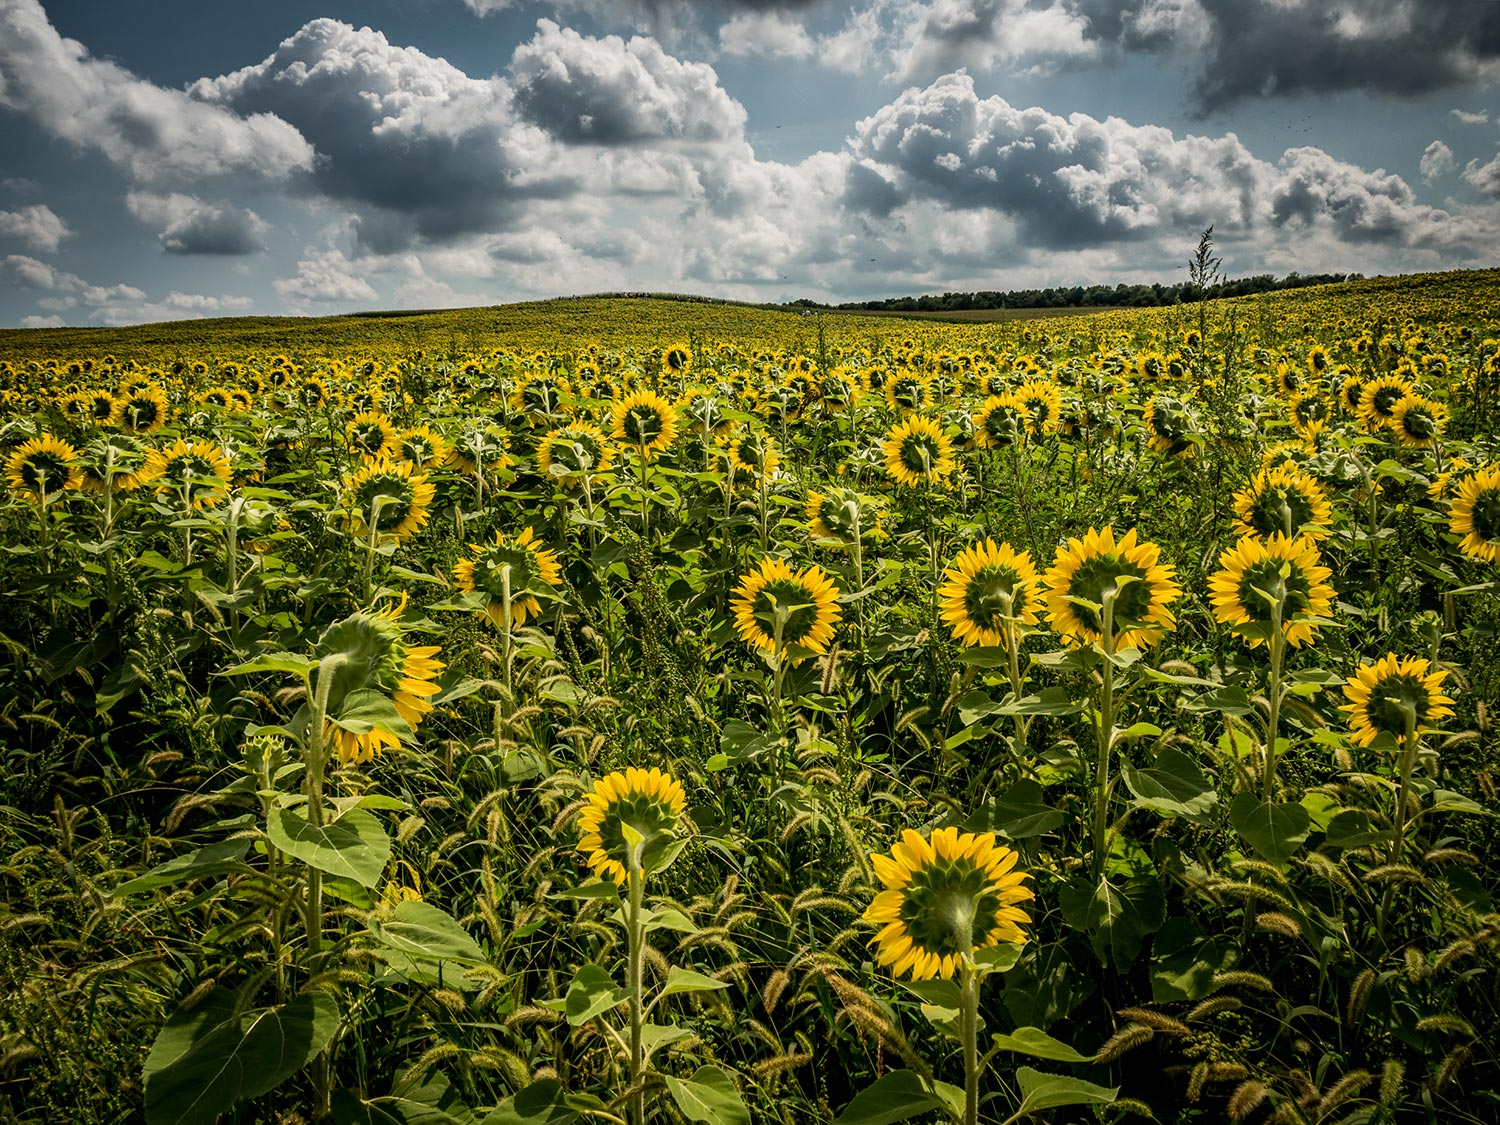 Image of sunflower field